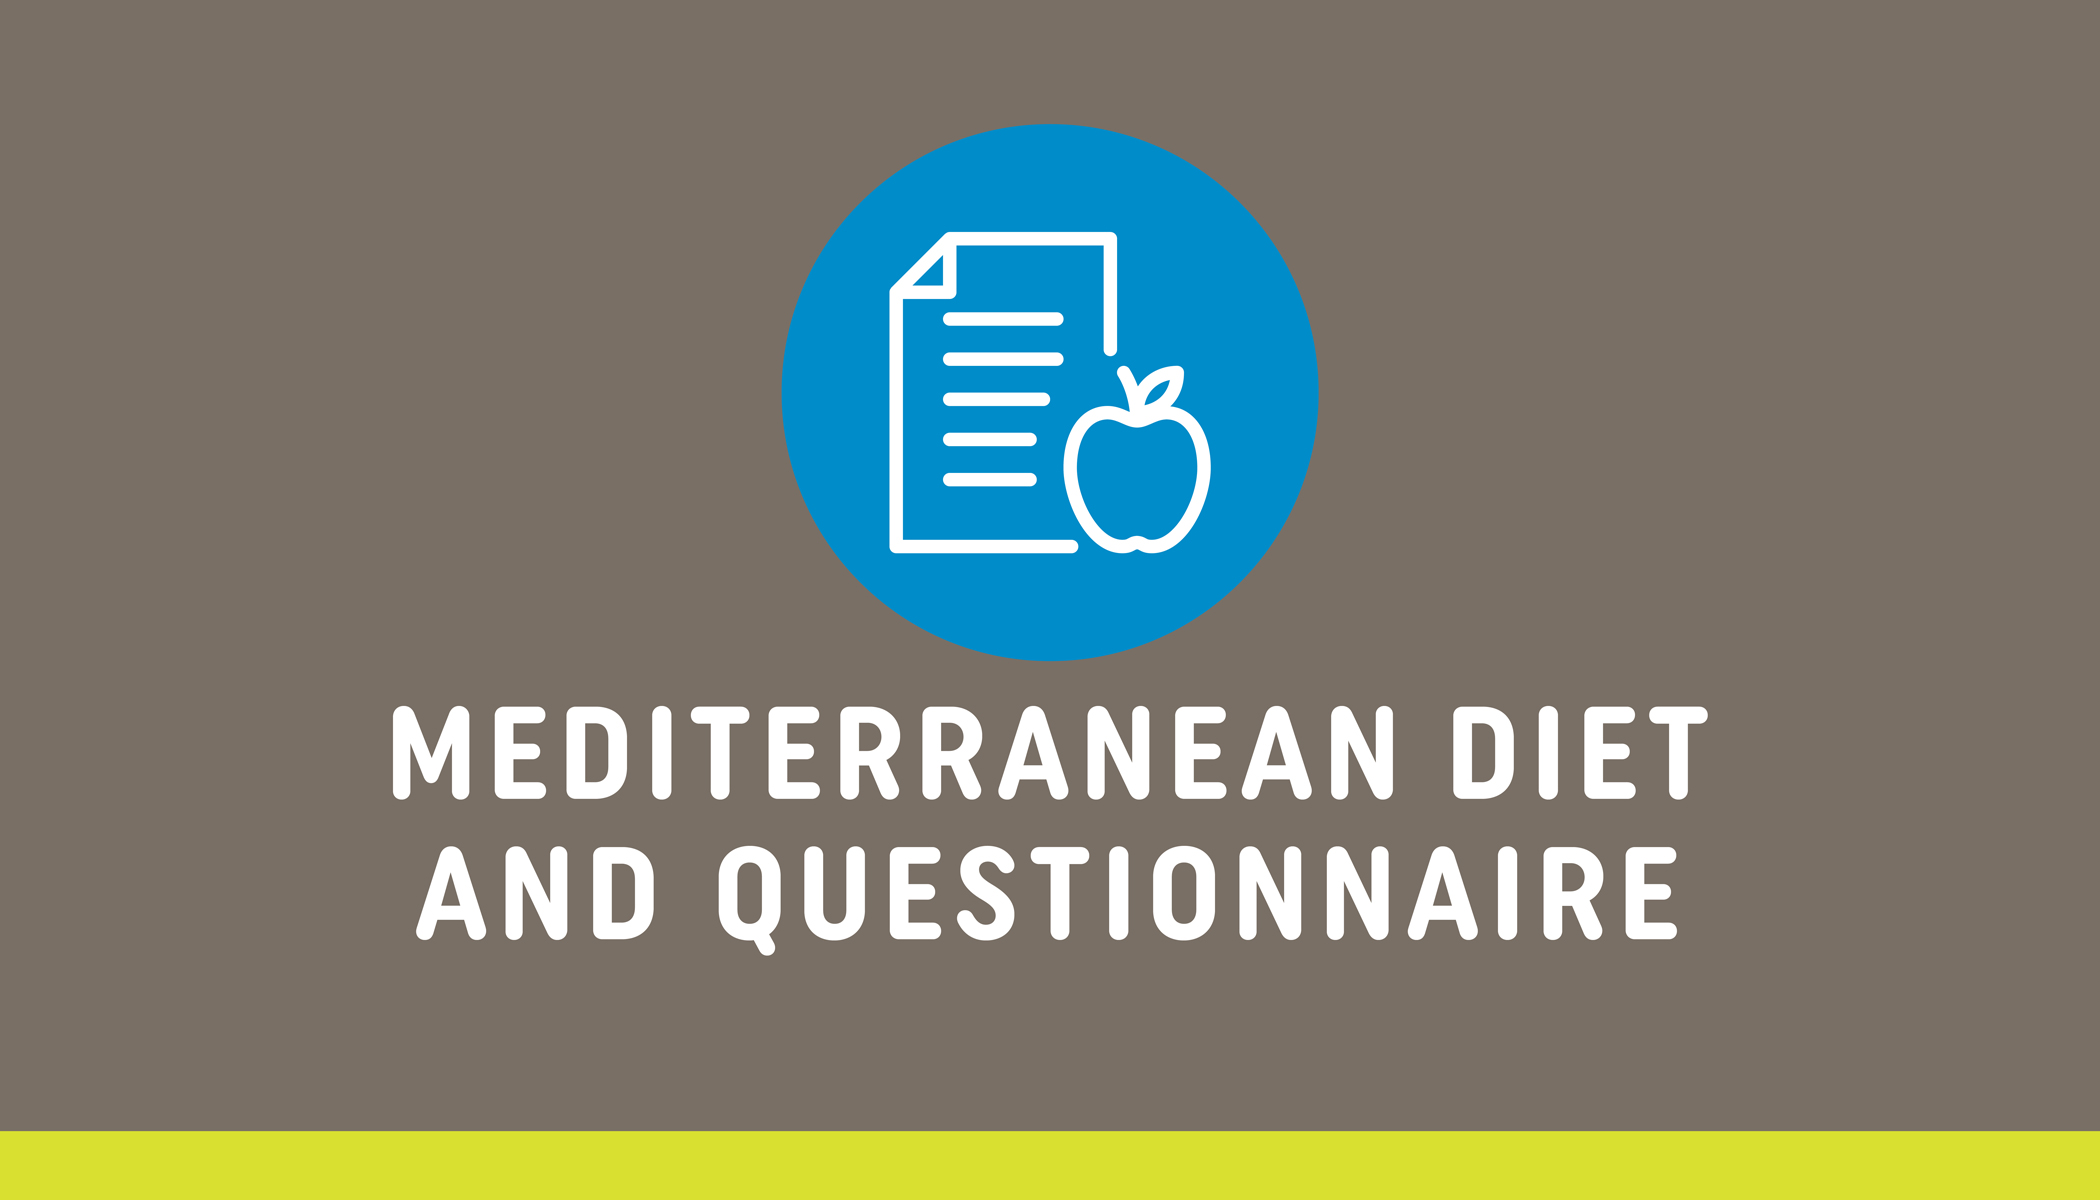 Mediterranean Eating Plan and Diet Questionnaire